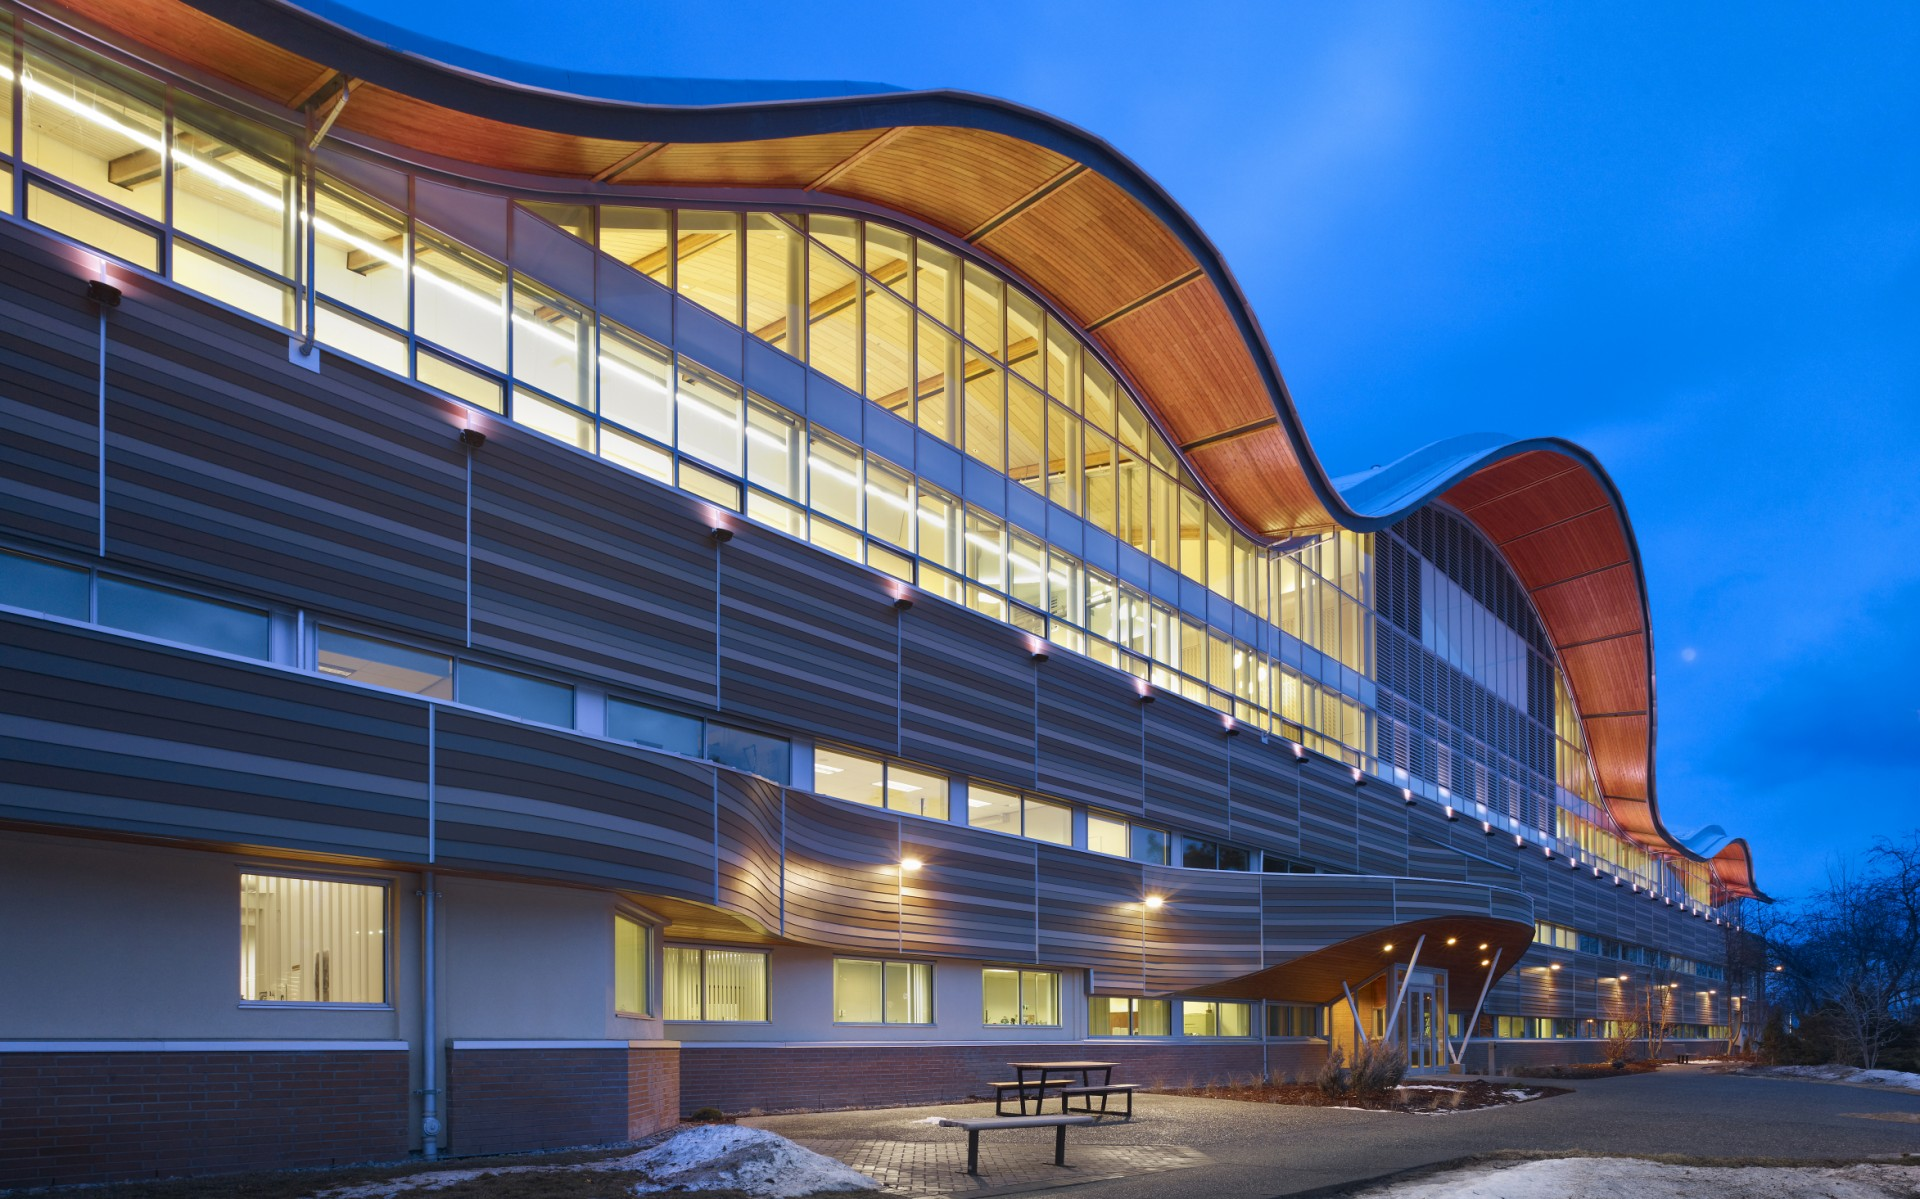 Thompson Rivers University has expanded the Old Main building, adding 40,000 square feet of learning space, and providing a home for the new Faculty of Law.